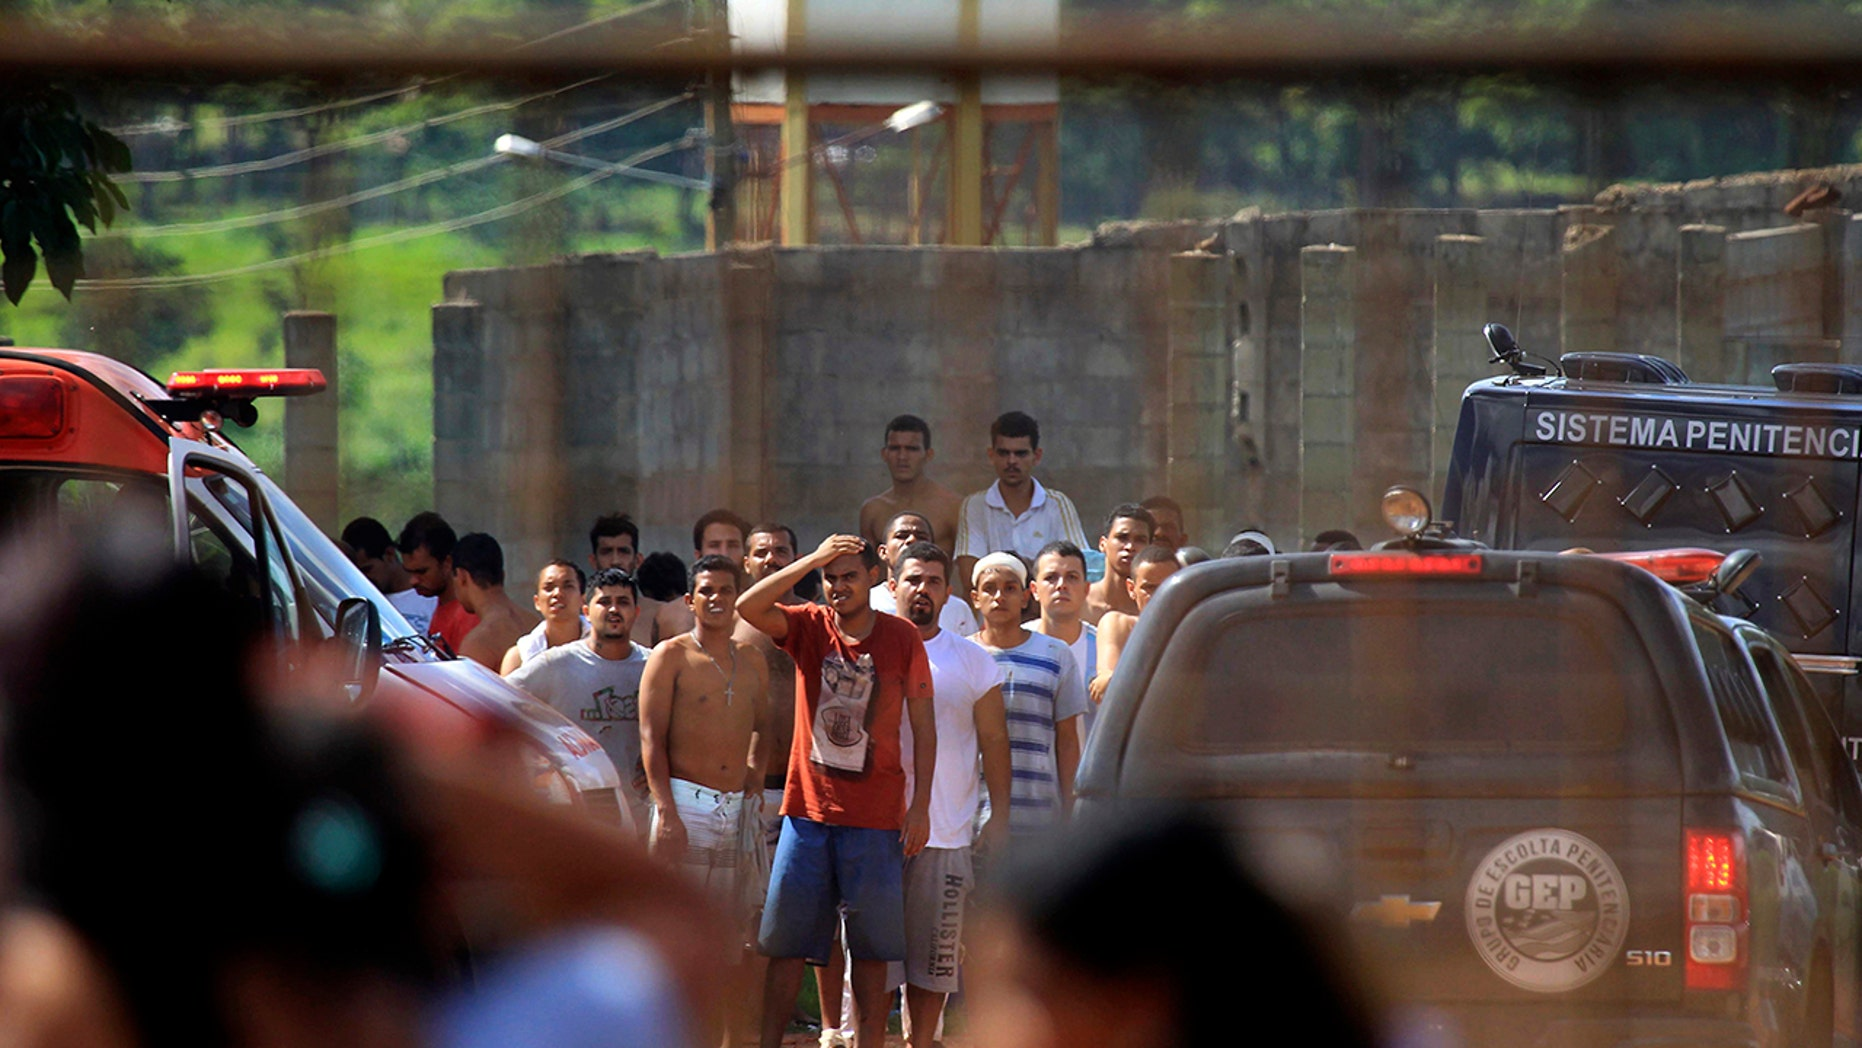 Brazilian police are searching for 99 inmates they said escaped following a prison riot that left nine dead.